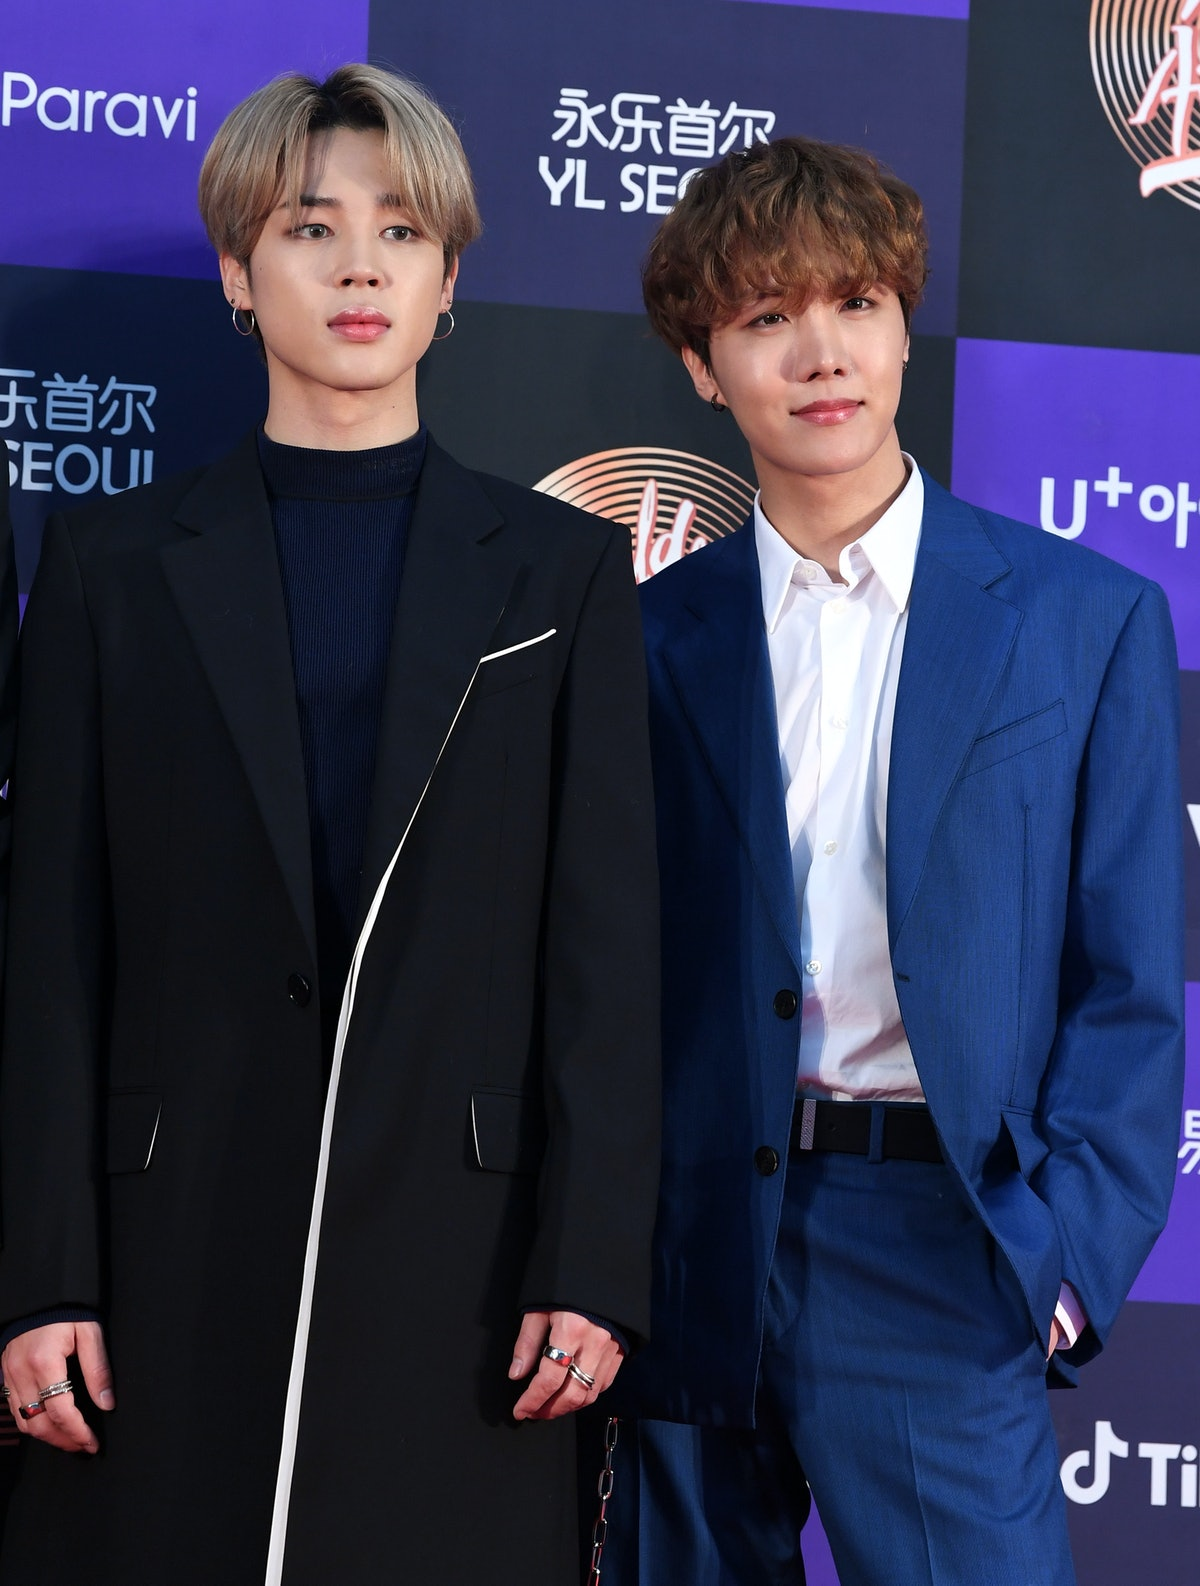 SEOUL, SOUTH KOREA - JANUARY 05: Jimin and J-Hope of BTS arrive at the photo call for the 34th Golde...